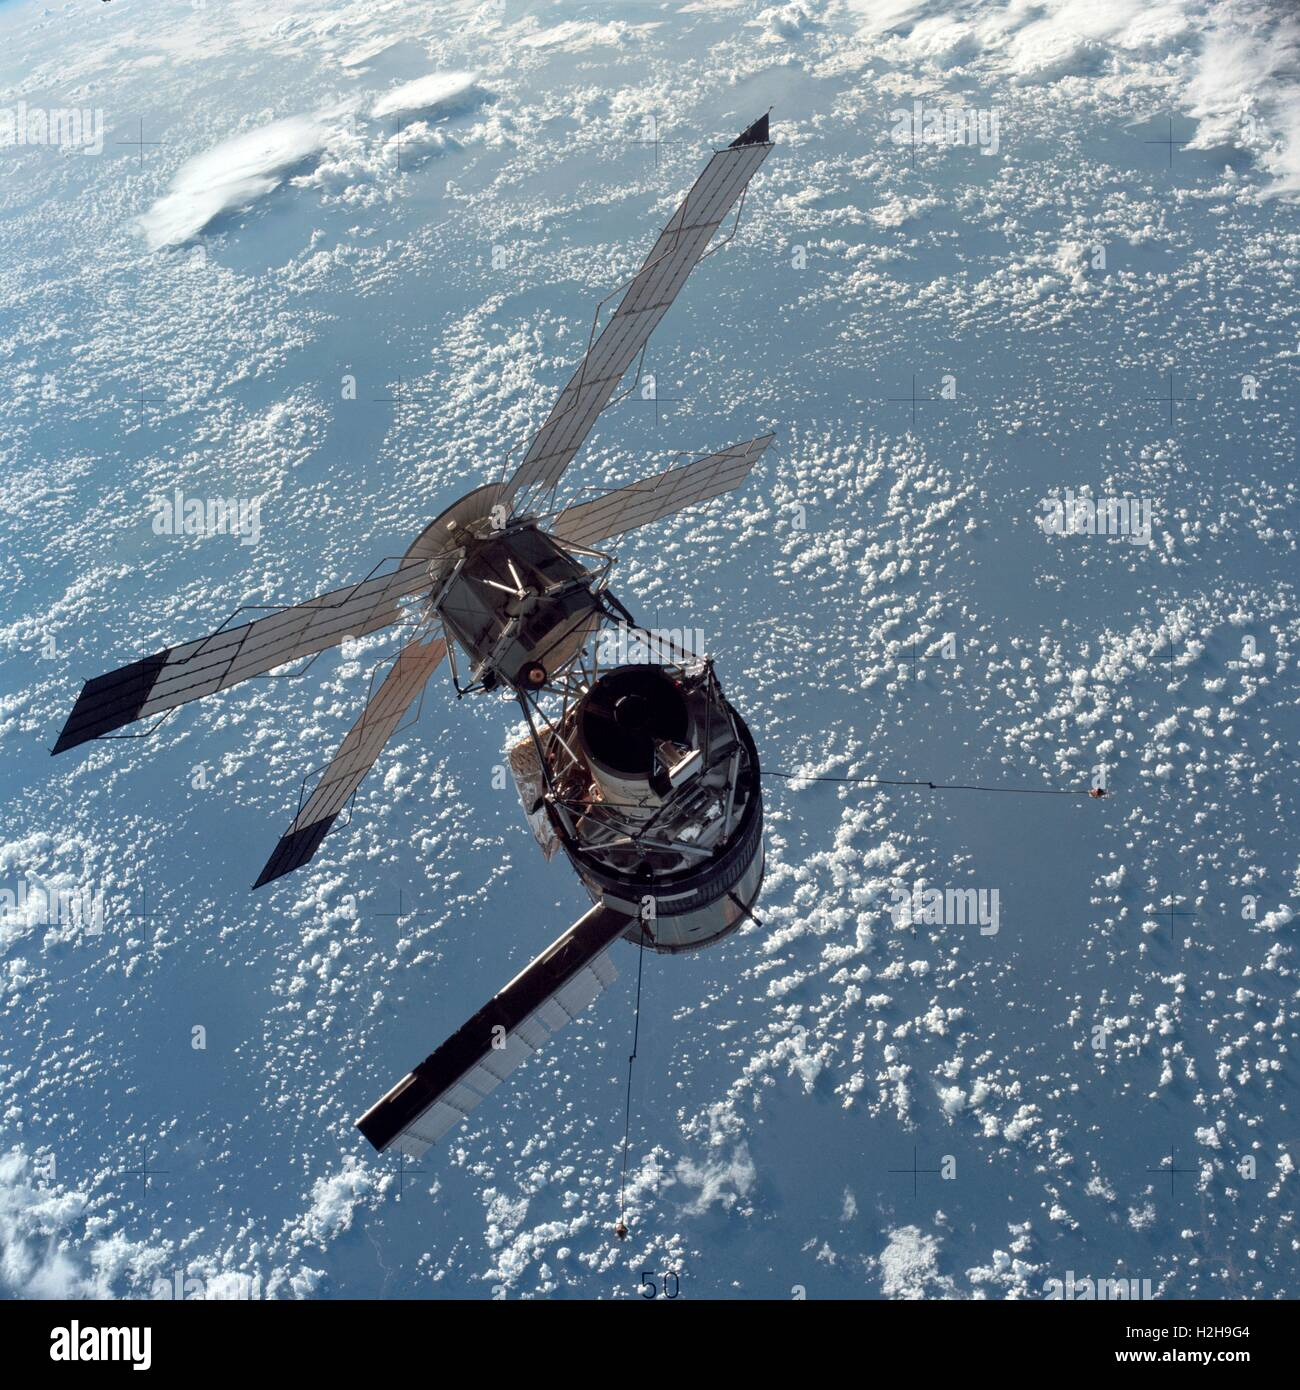 An aerial view of the NASA Skylab space station cluster above clouds against the Earth background while in Earth - Stock Image